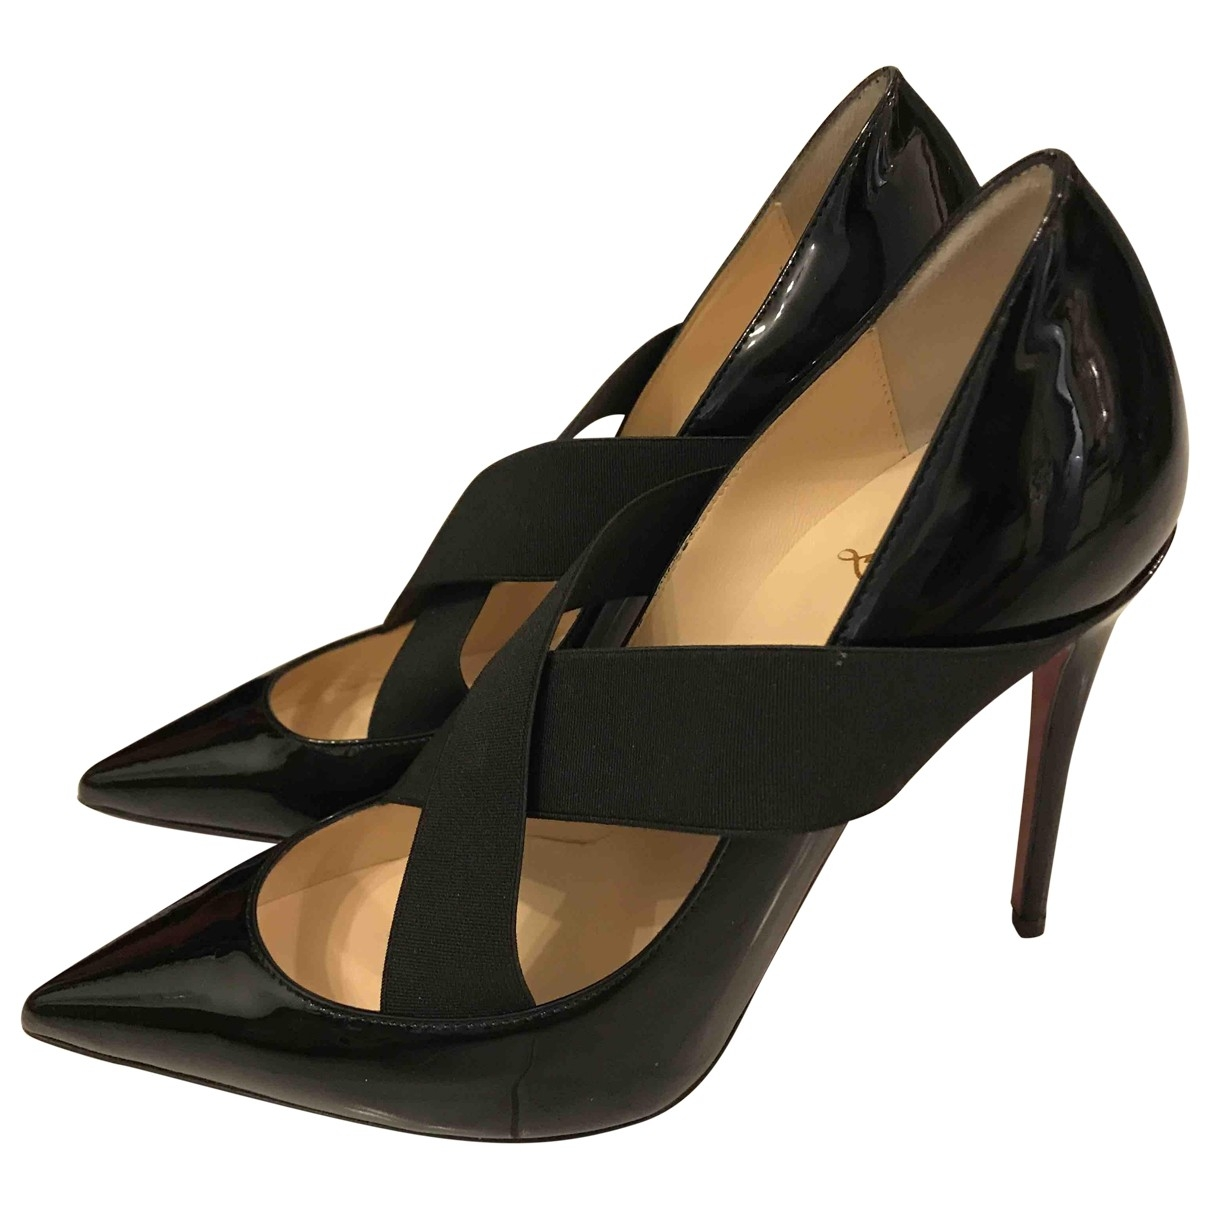 Tacones Simple pump de Charol Christian Louboutin